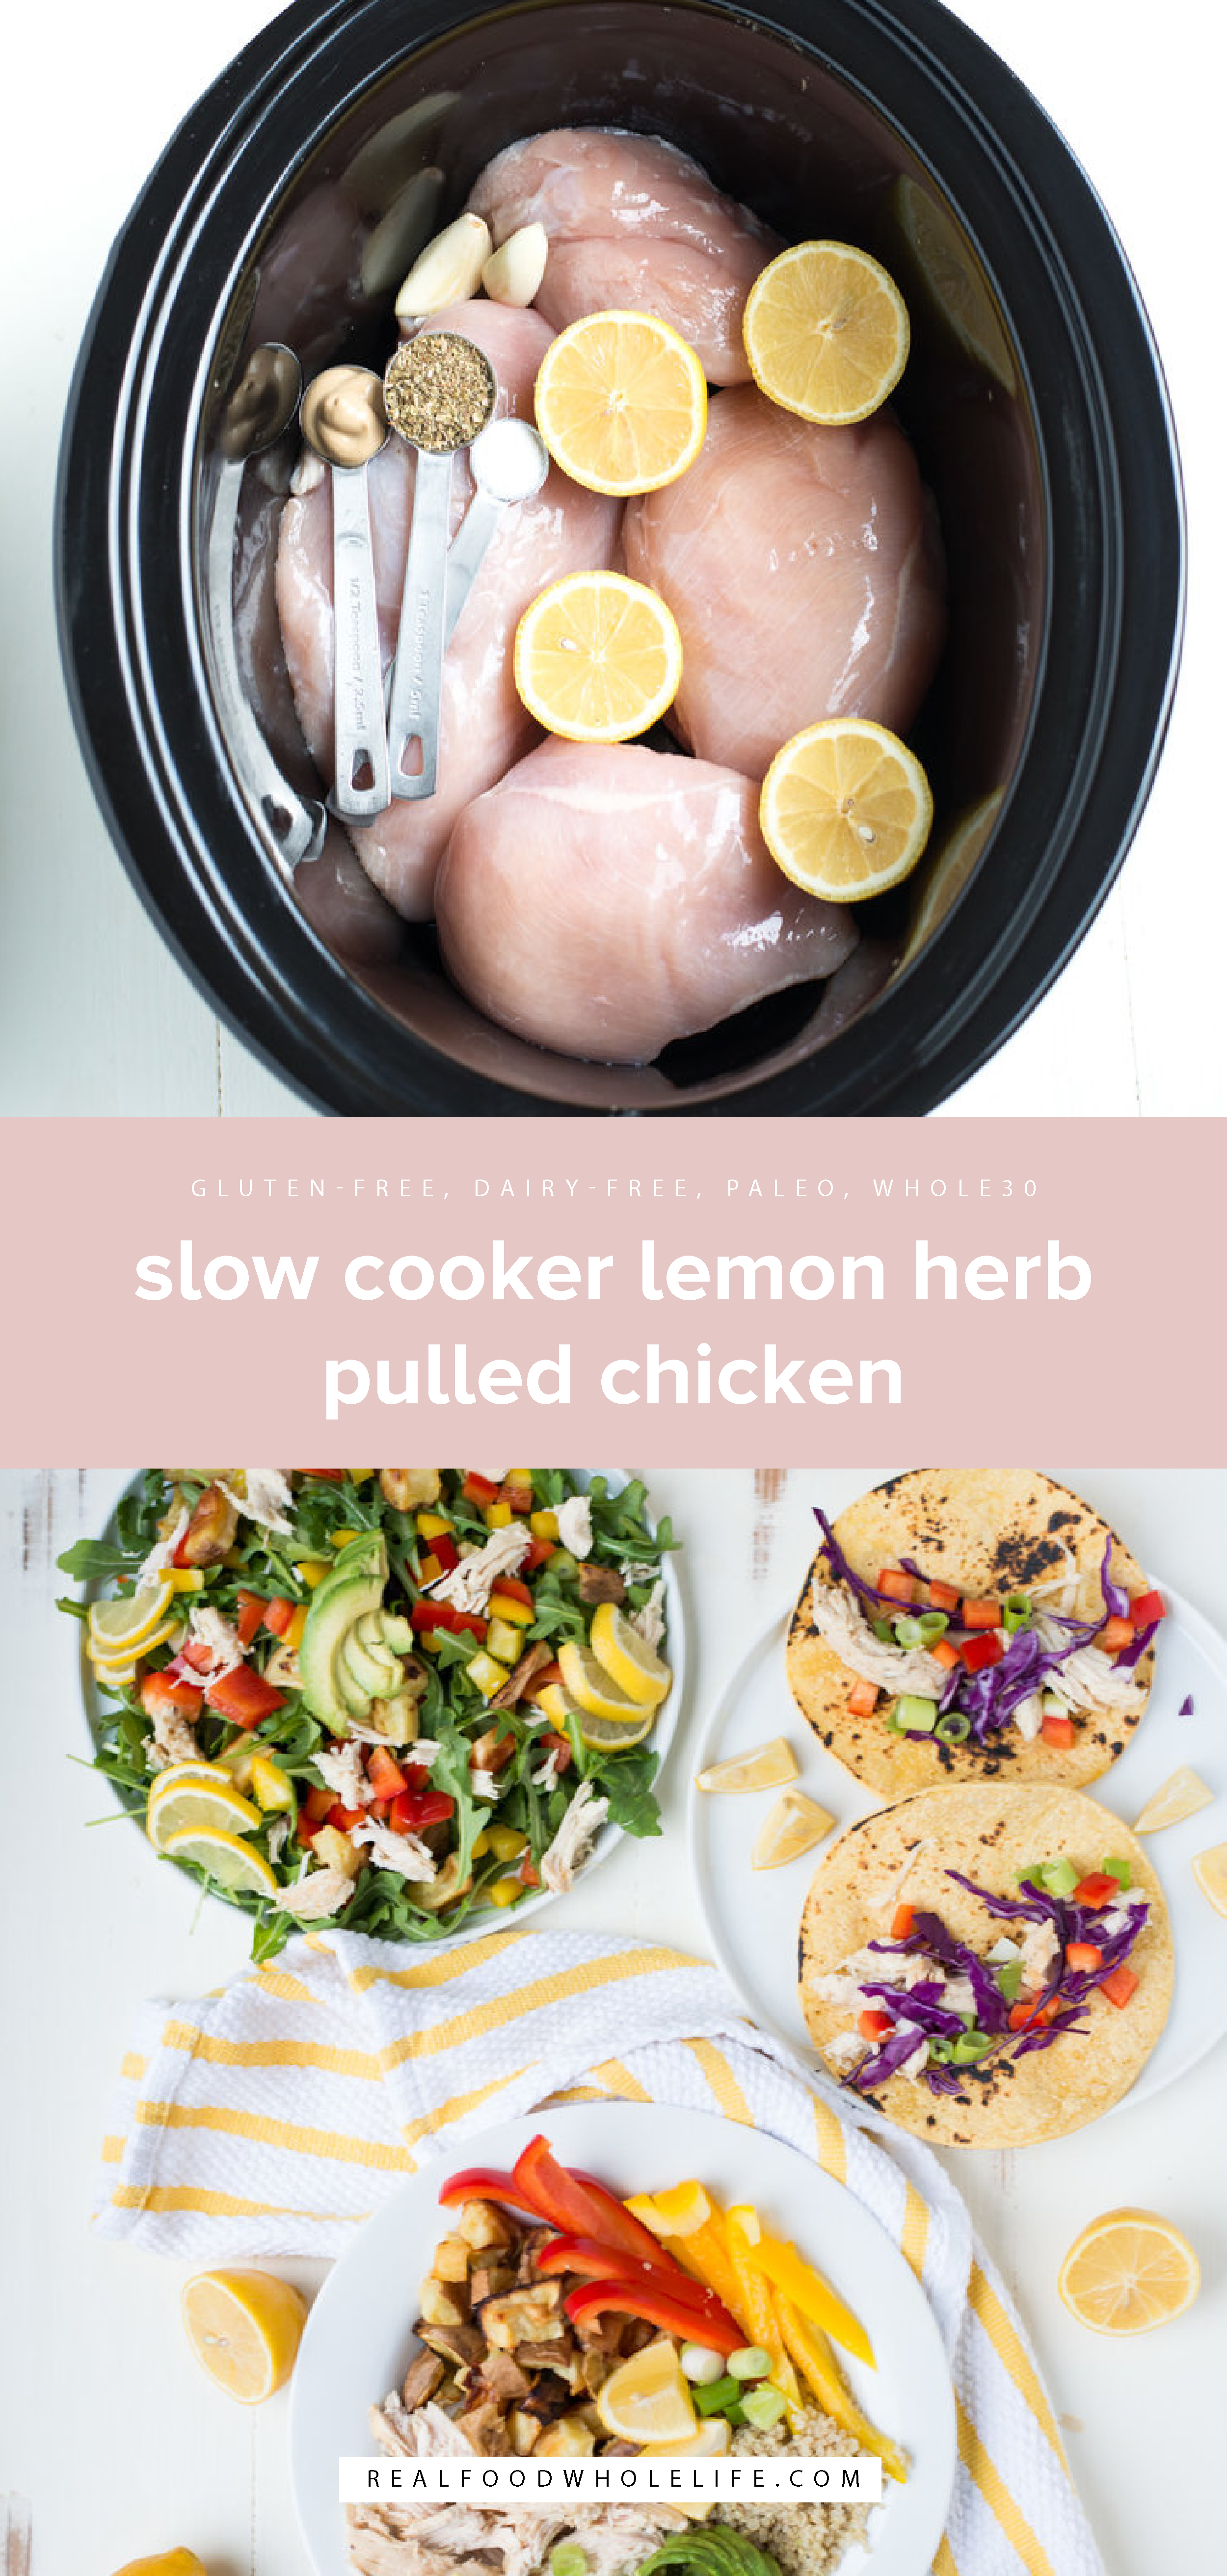 Bright, tangy, and crazy simple to make, Slow Cooker Lemon Herb Pulled Chicken is a no-fuss weeknight dinner everyone will love. Read on for the chicken recipe, plus 3 ways to use it, so you can cook once and eat well all week!